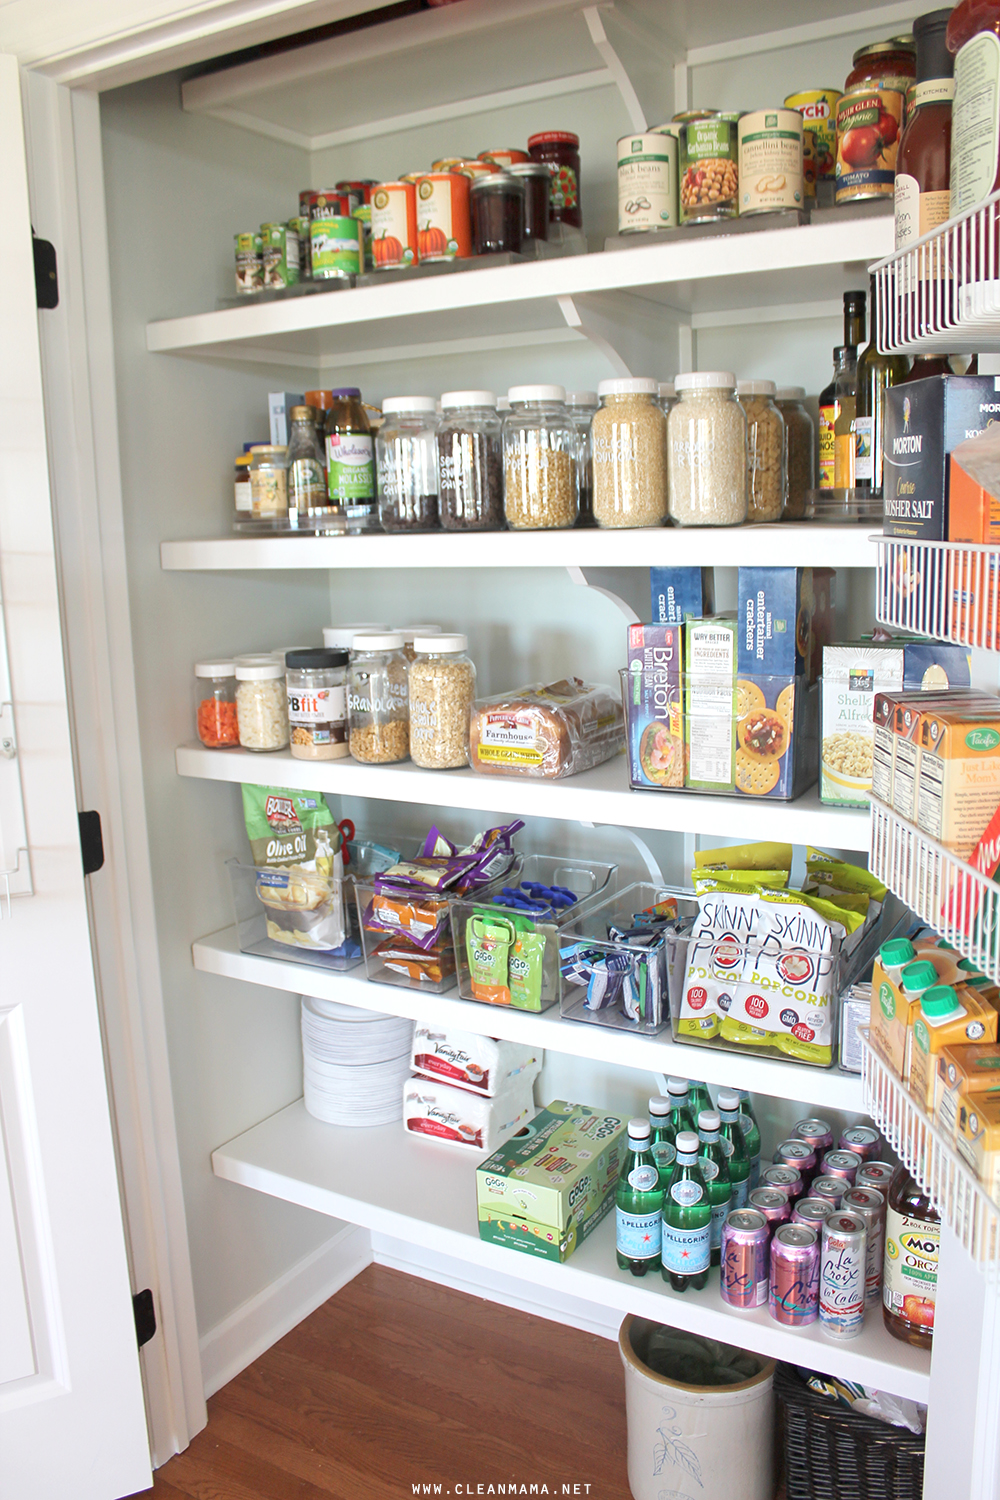 pantry-side-clean-mama